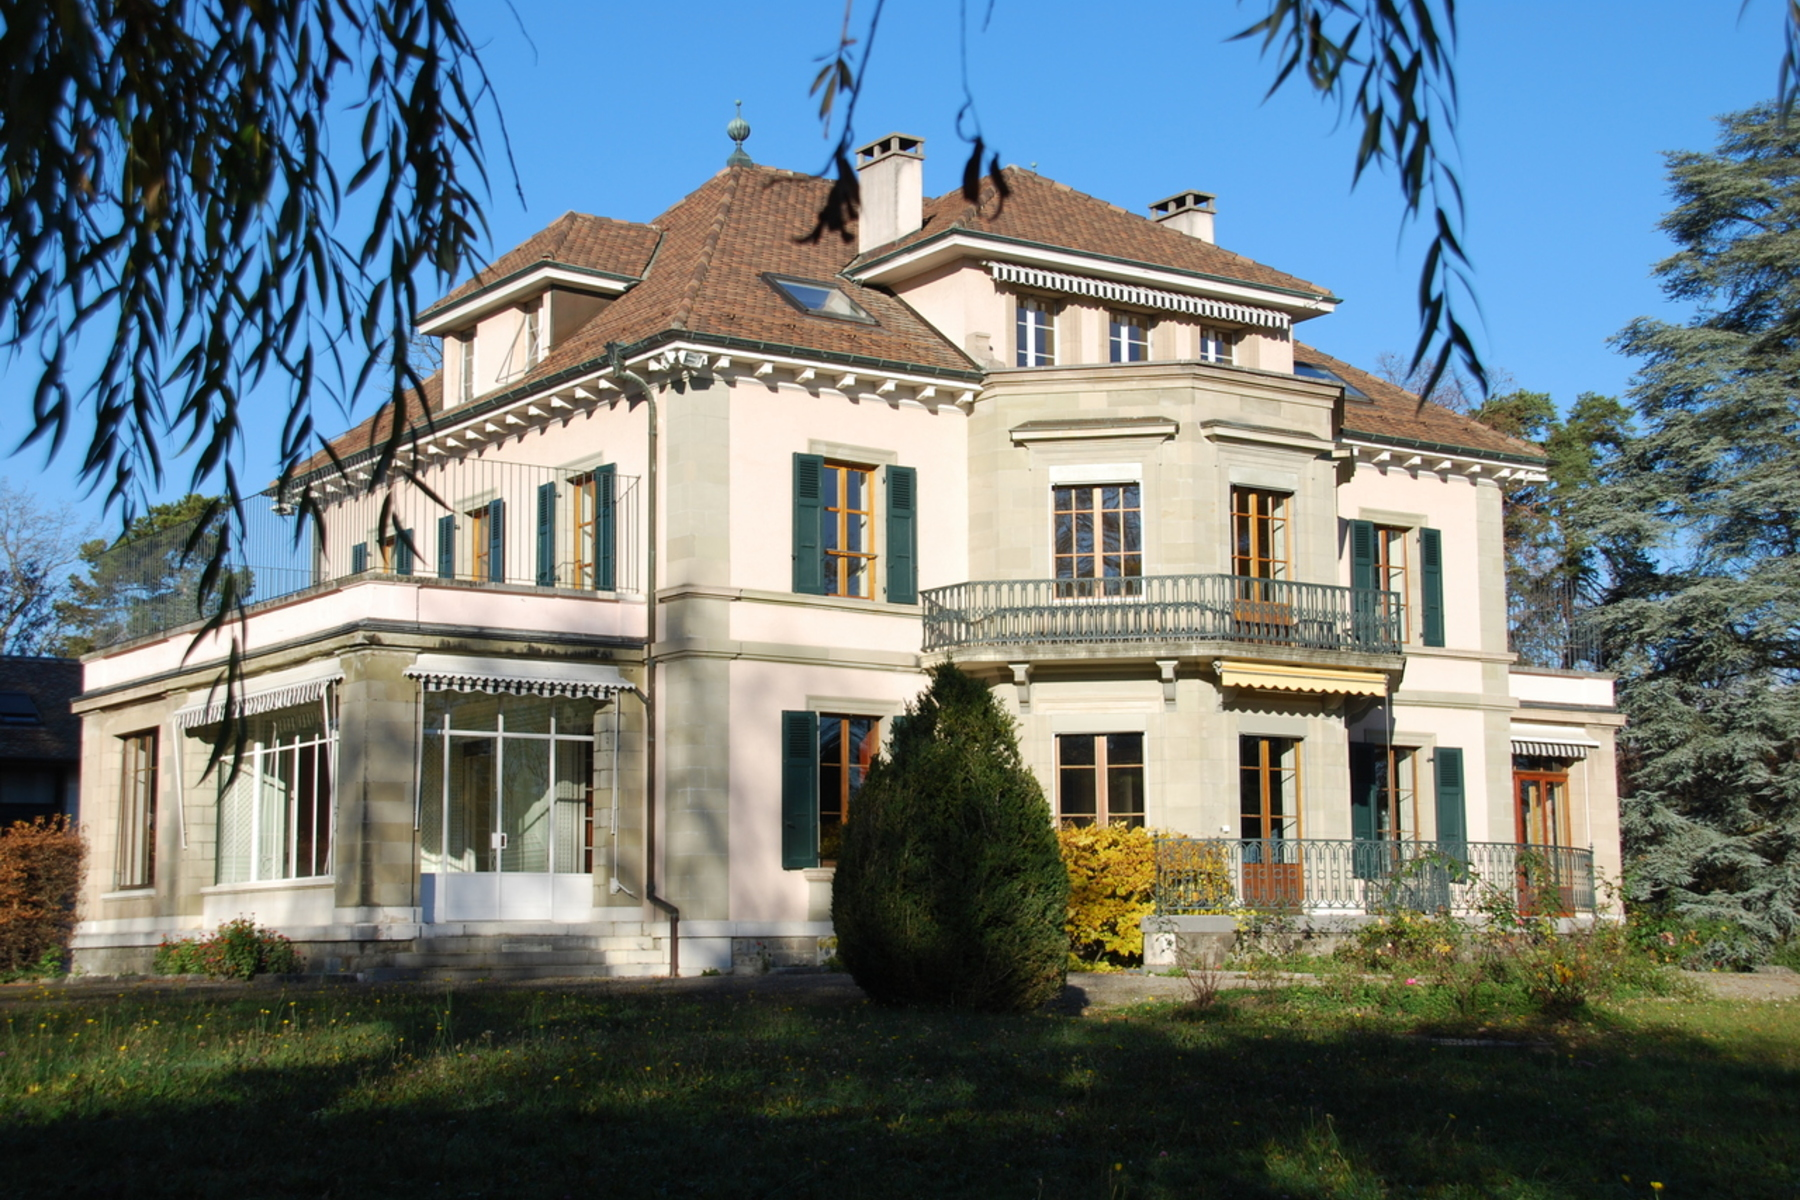 Single Family Home for Sale at Stunning mansion Chambésy Chambesy, Geneva, 1292 Switzerland